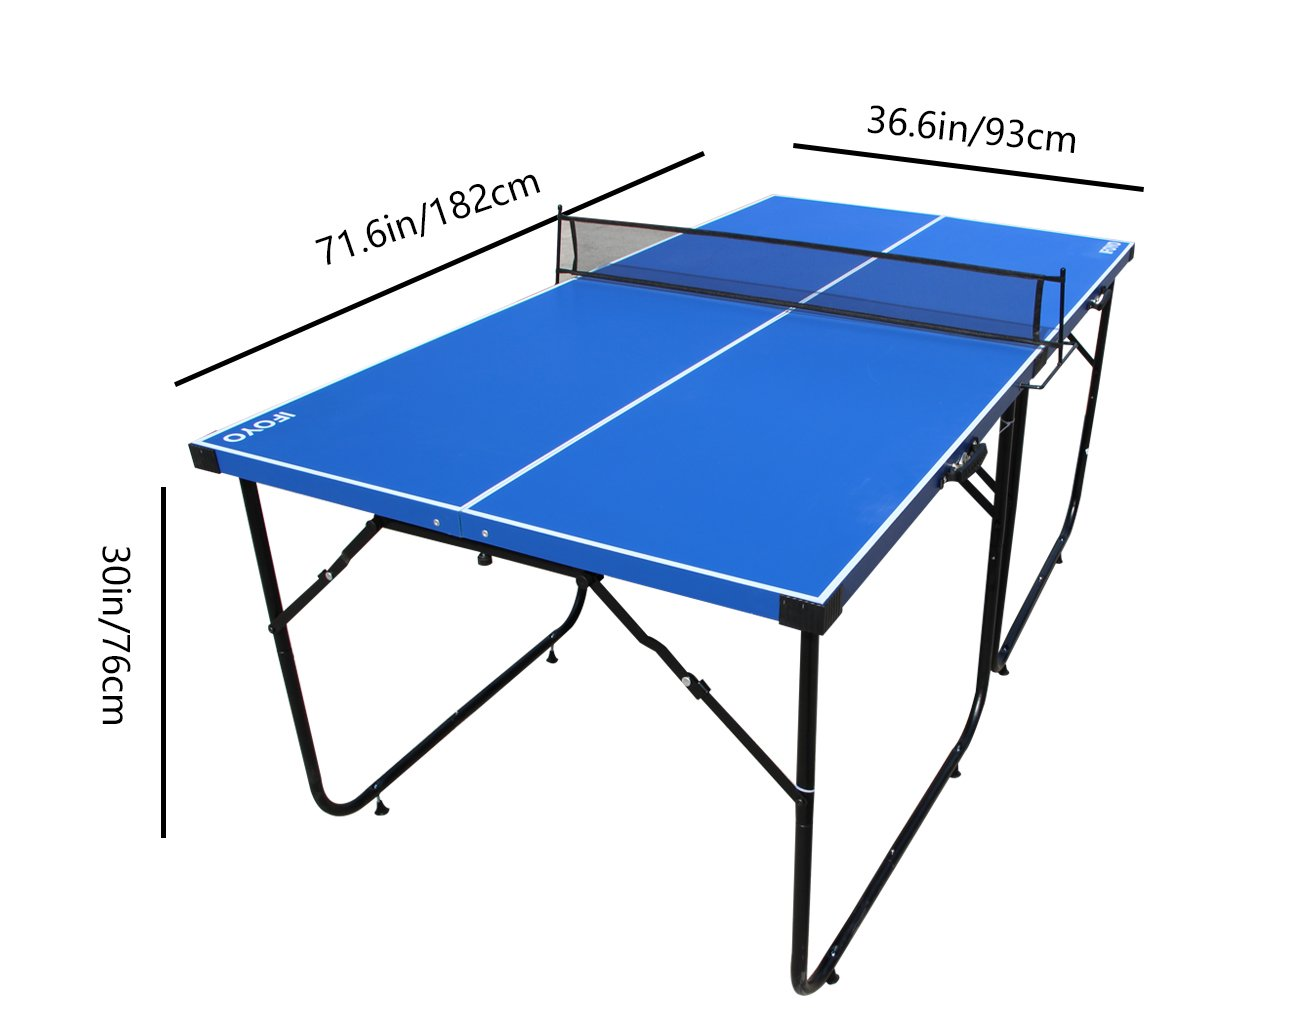 Great Amazon.com : IFOYO Table Tennis Table, 6ft Midsize Ping Pong Table 4 Piece  Folding Portable Indoor Tennis Table With Net Set For Adults, Kids, ...